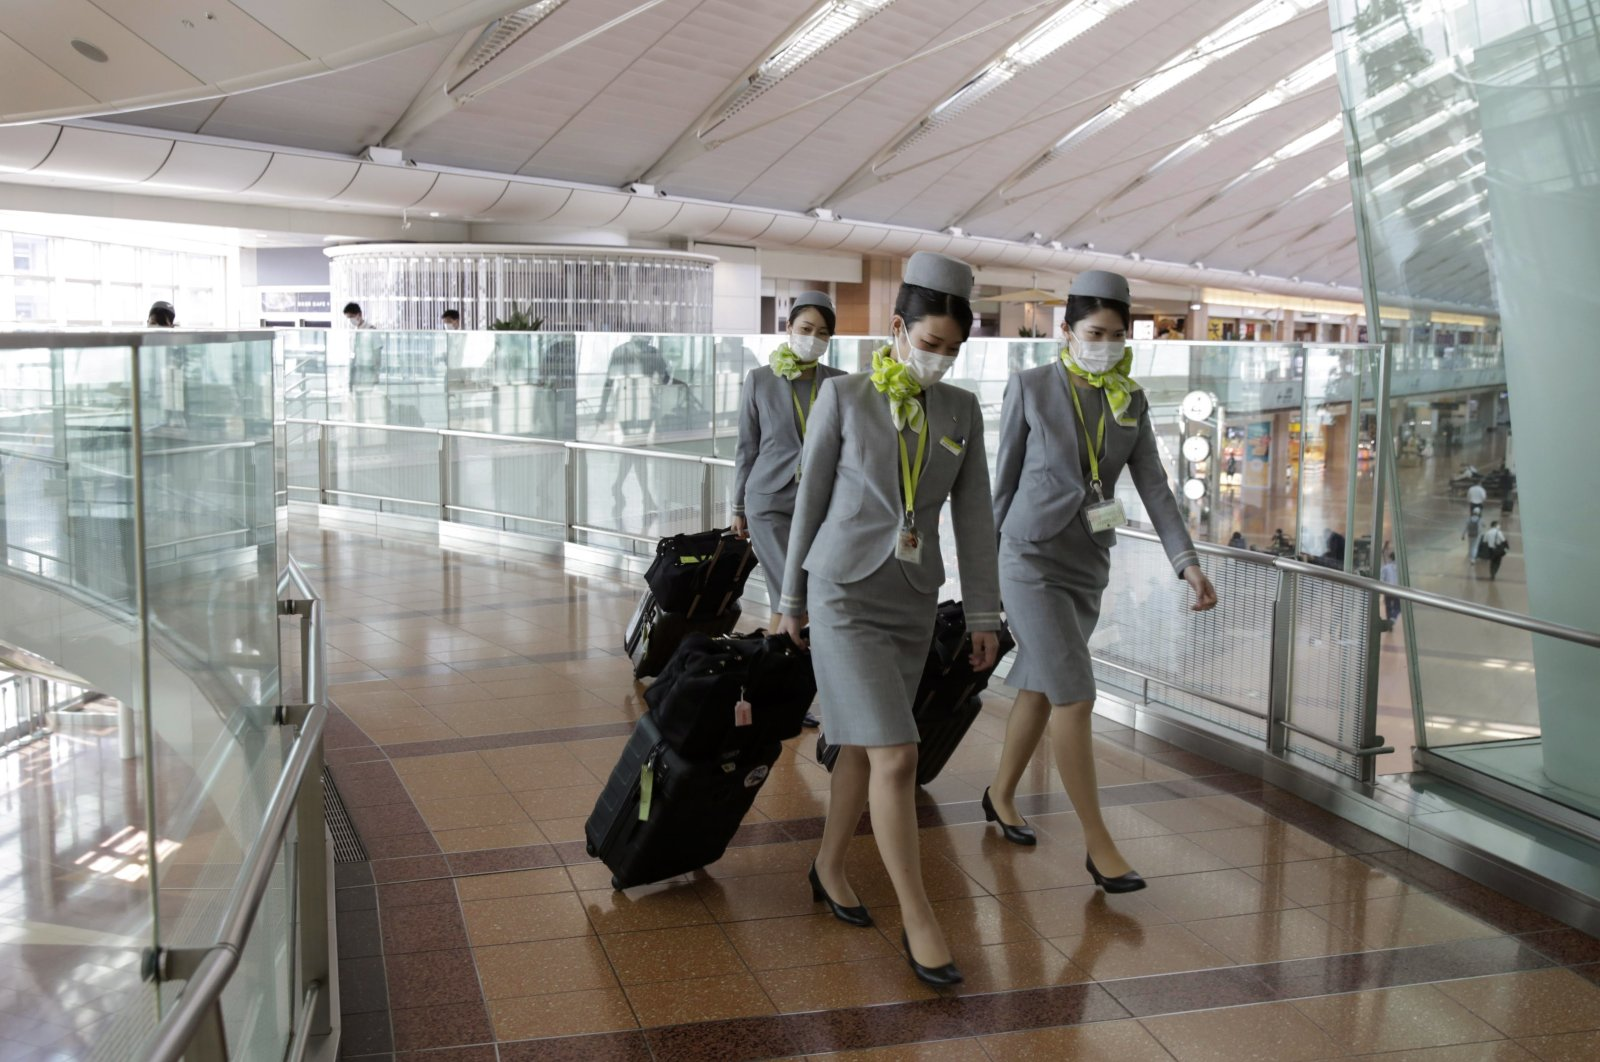 Flight attendants wearing protective masks walk toward a crew entrance at Haneda Airport in Tokyo, Japan, April 26, 2020. (EPA Photo)